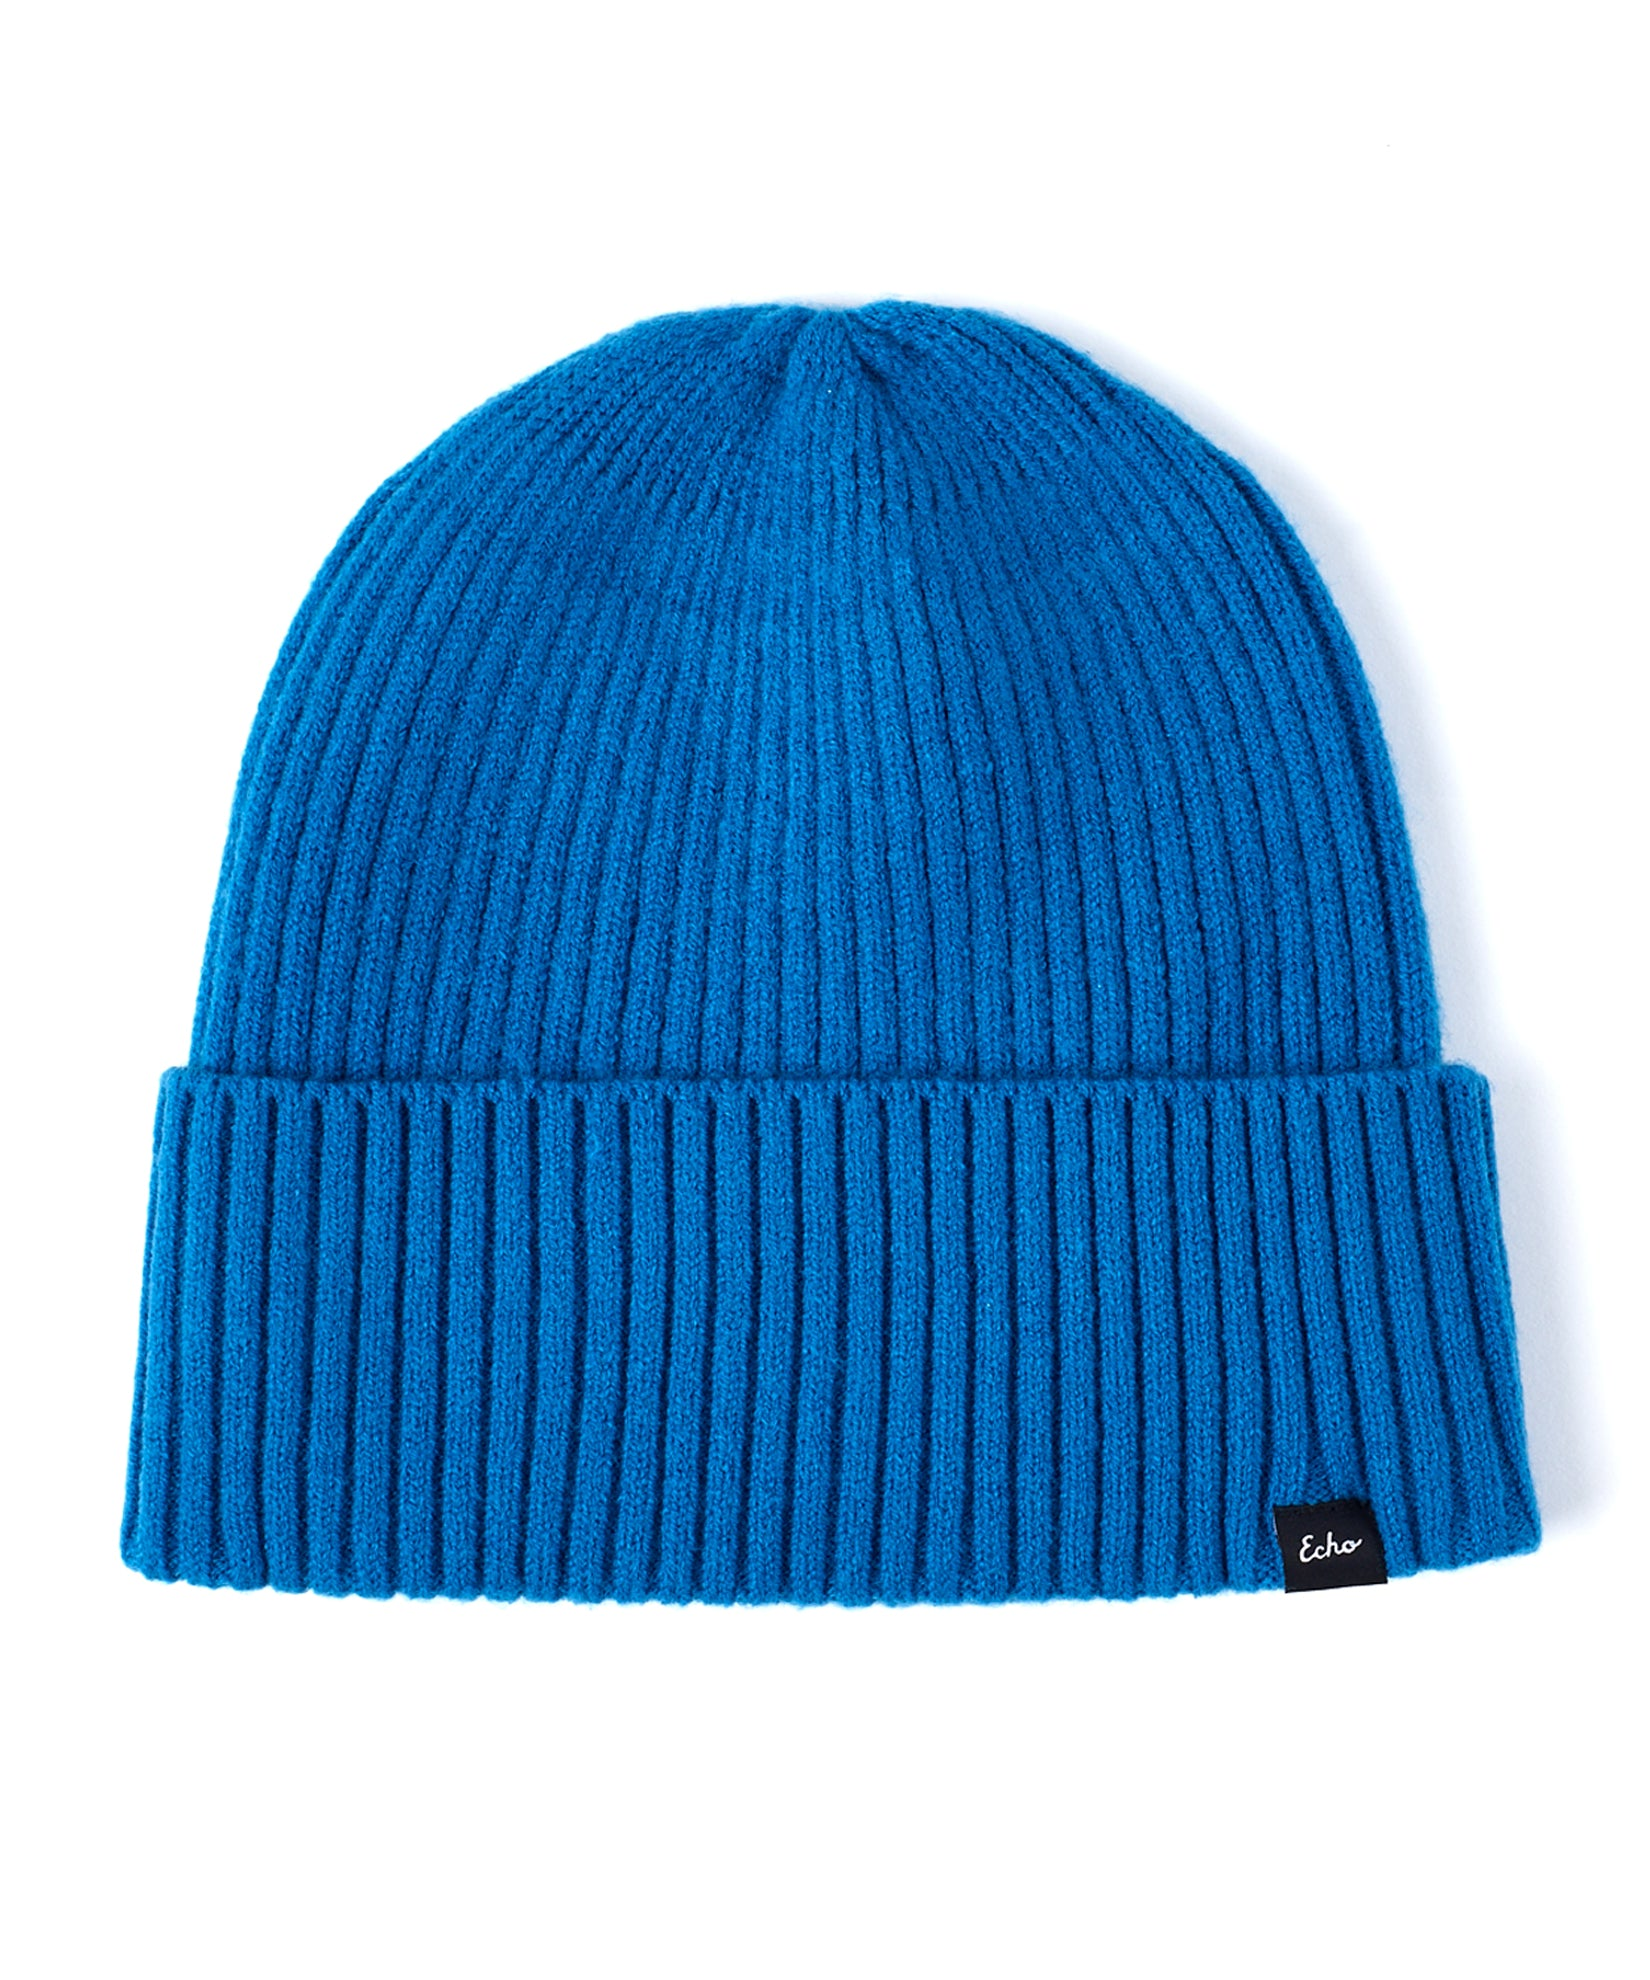 Peacock - Active Stretch Ribbed Cuff Beanie